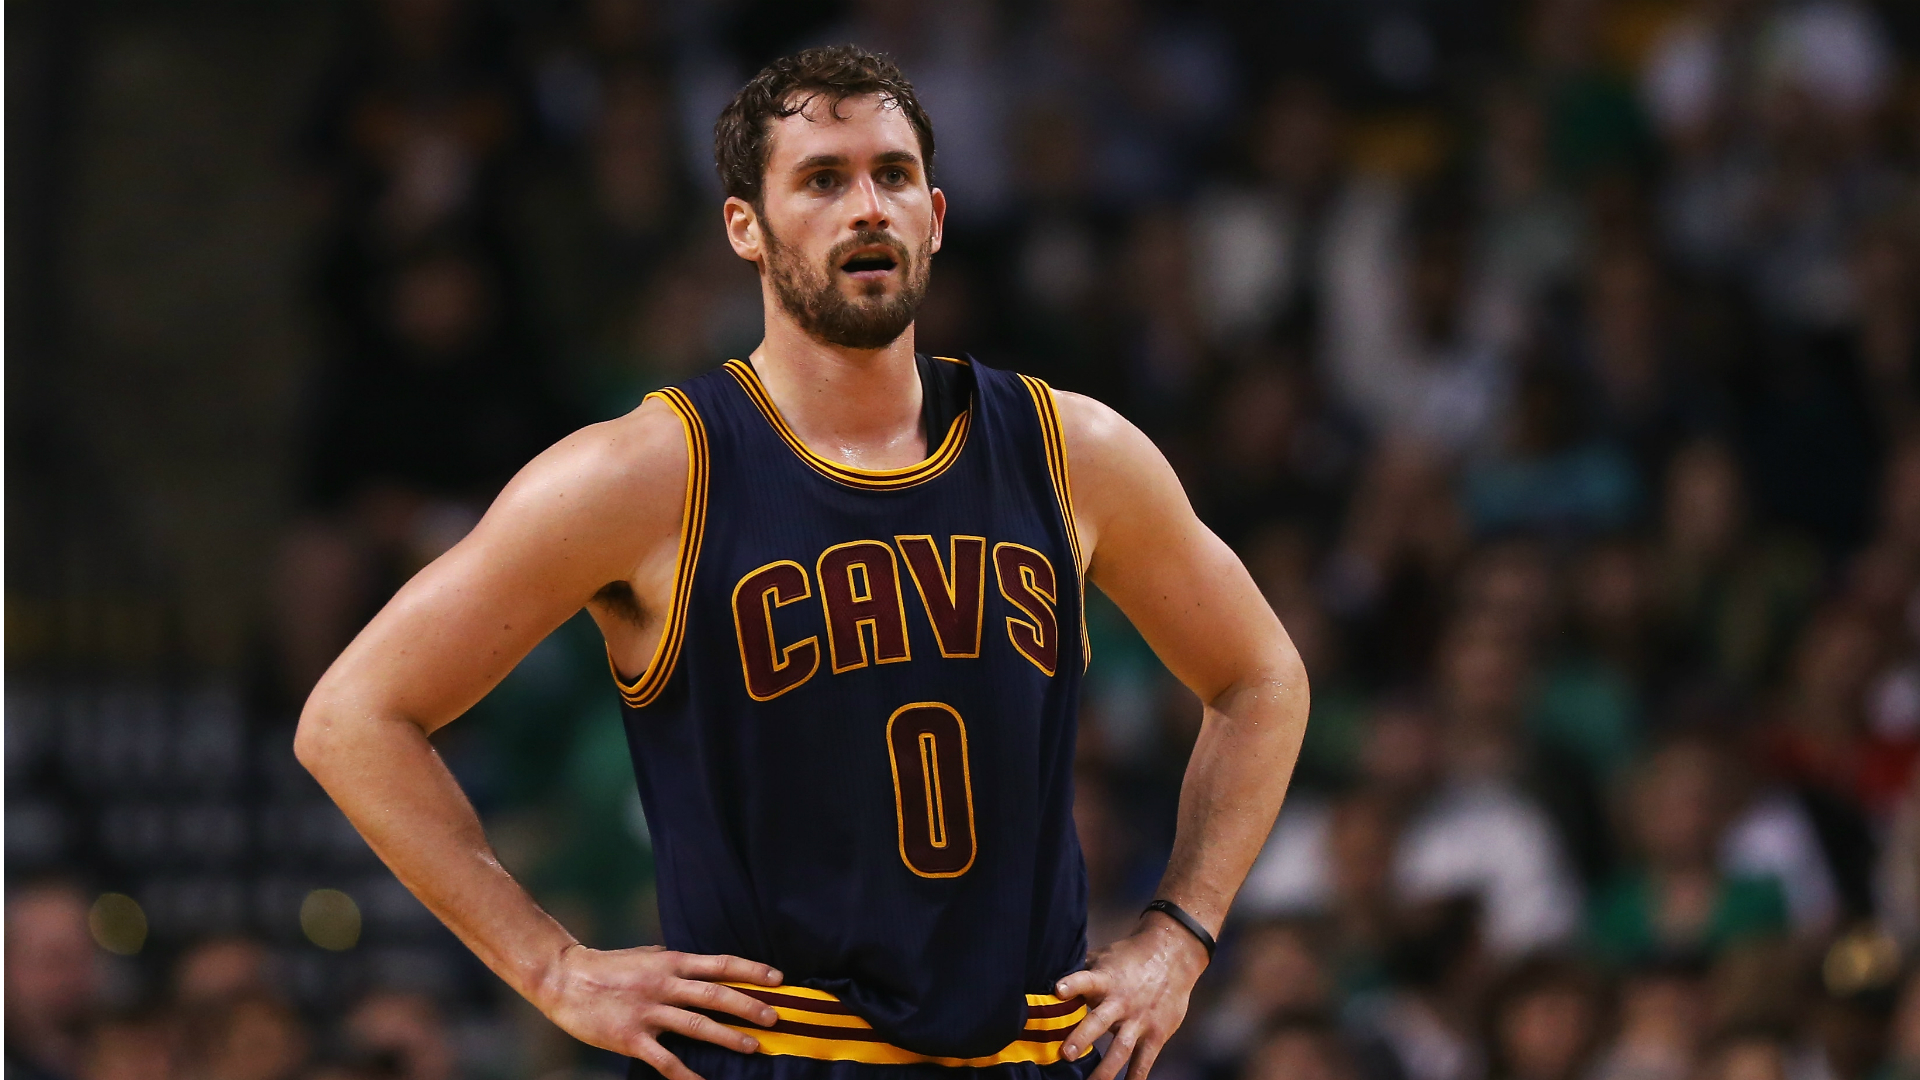 Kevin Love Wallpaper Hd : Kevin Love finds a playoff identity as cavaliers near sweep of celtics NBA Sporting News